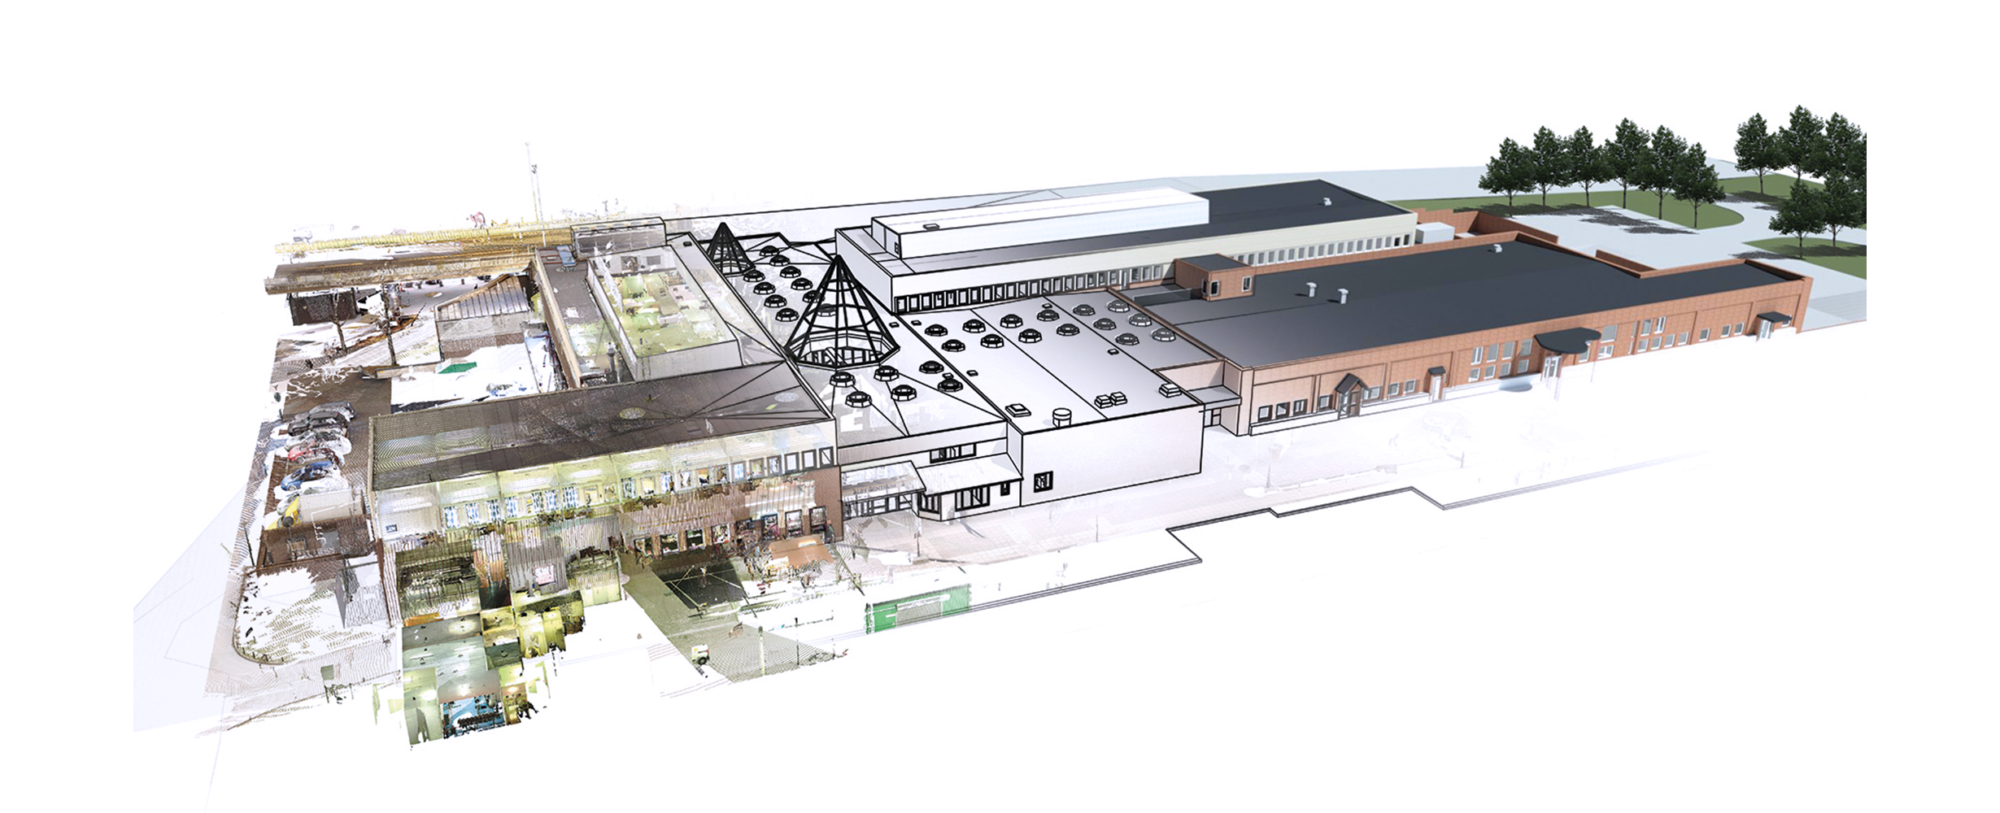 How to digitize existing buildings